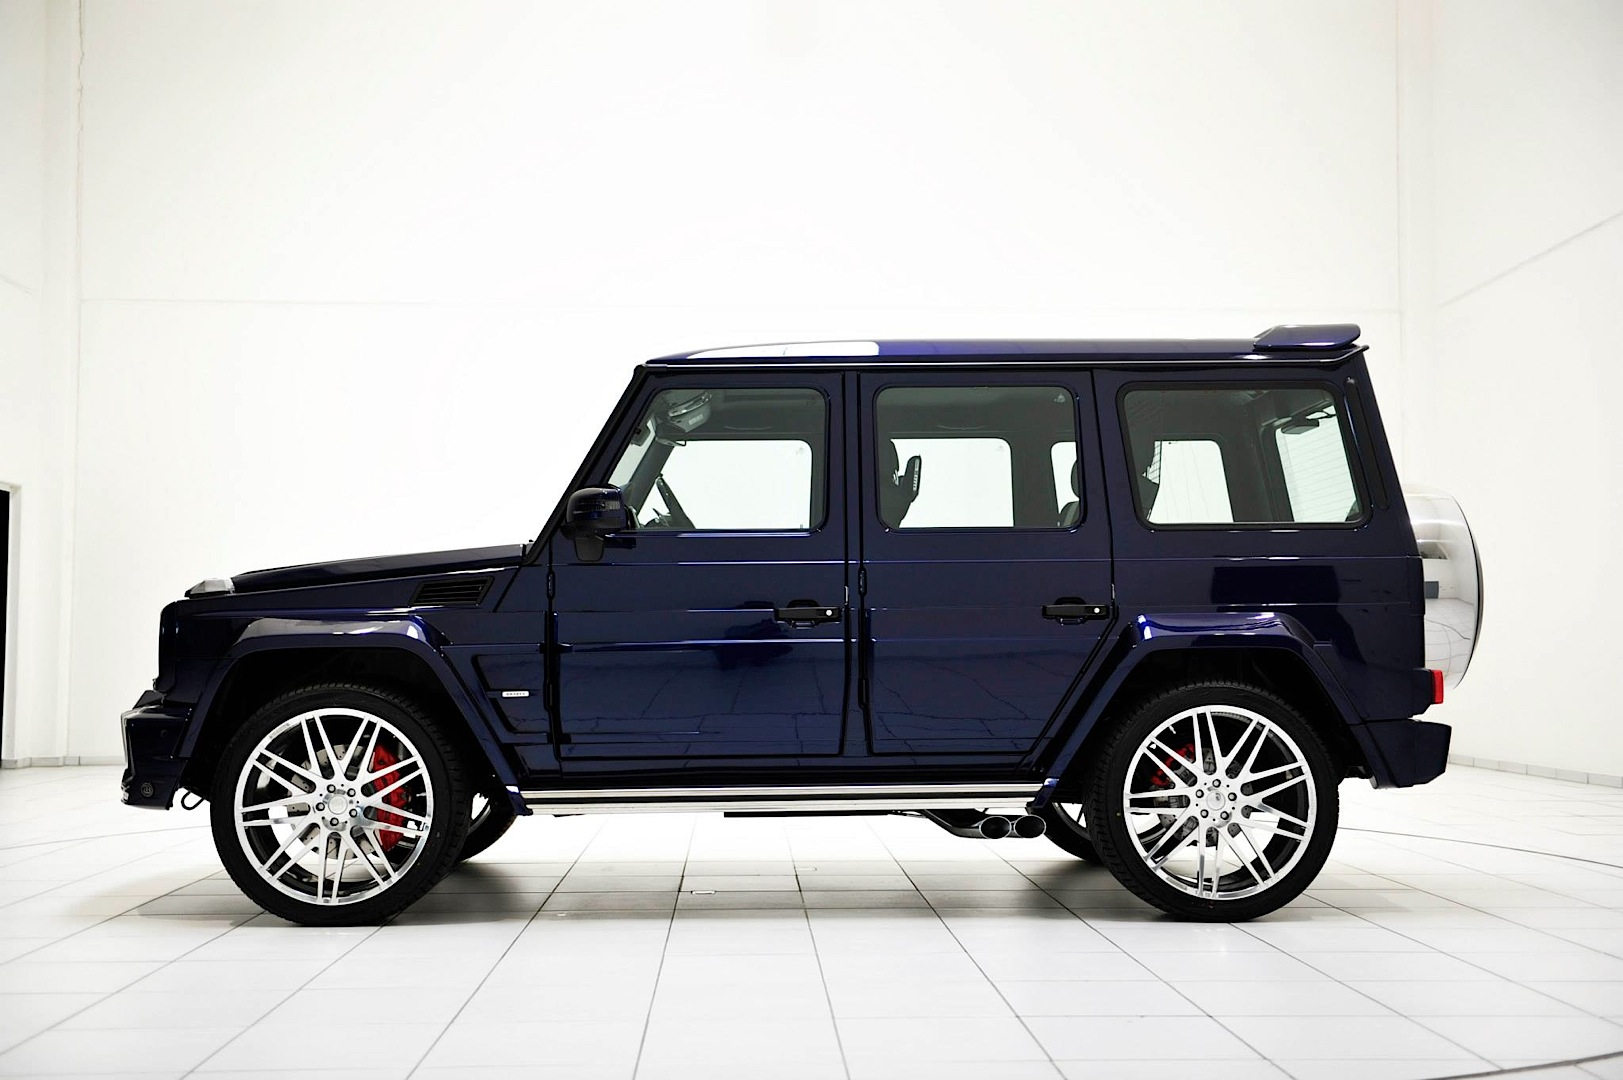 brabus g 63 amg is having the mystic blue autoevolution. Black Bedroom Furniture Sets. Home Design Ideas